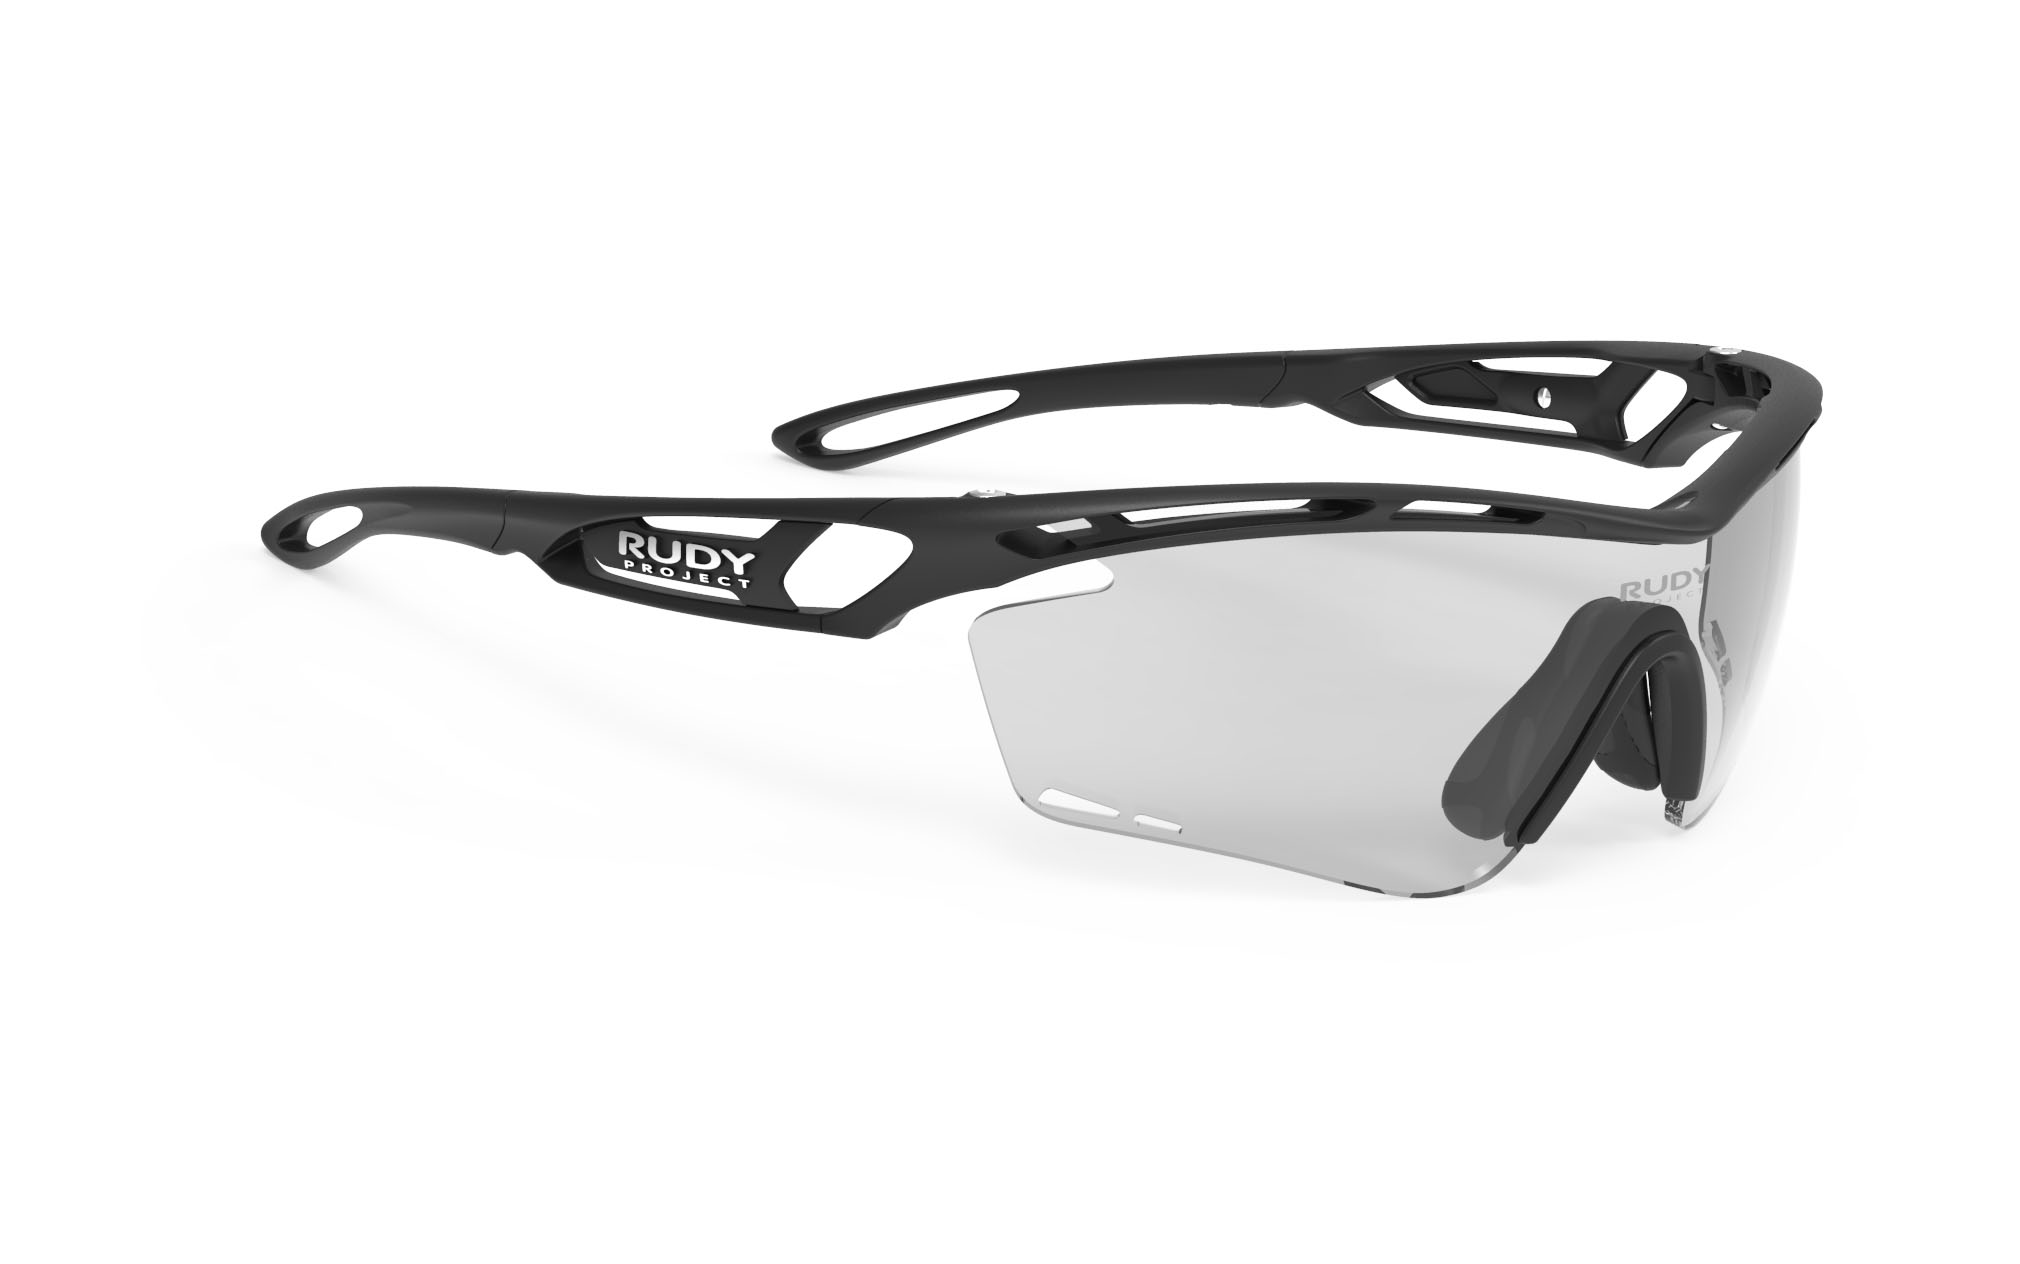 Tralyx Black Matte - ImpactX Photochromic 2 Black